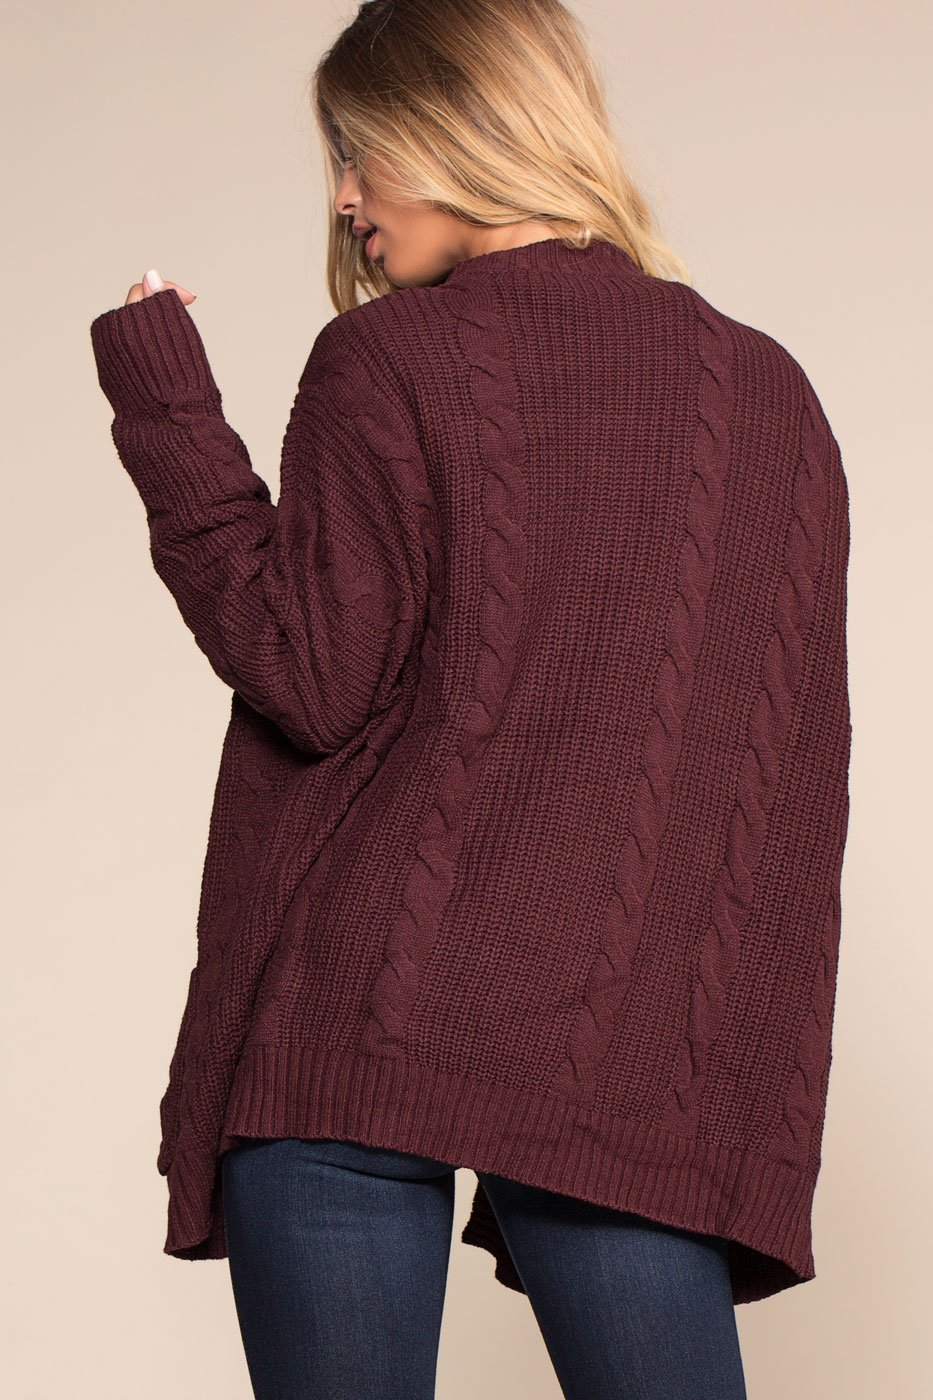 Cardigans - Cozy Cable Oversized Cardigan Sweater - Burgundy